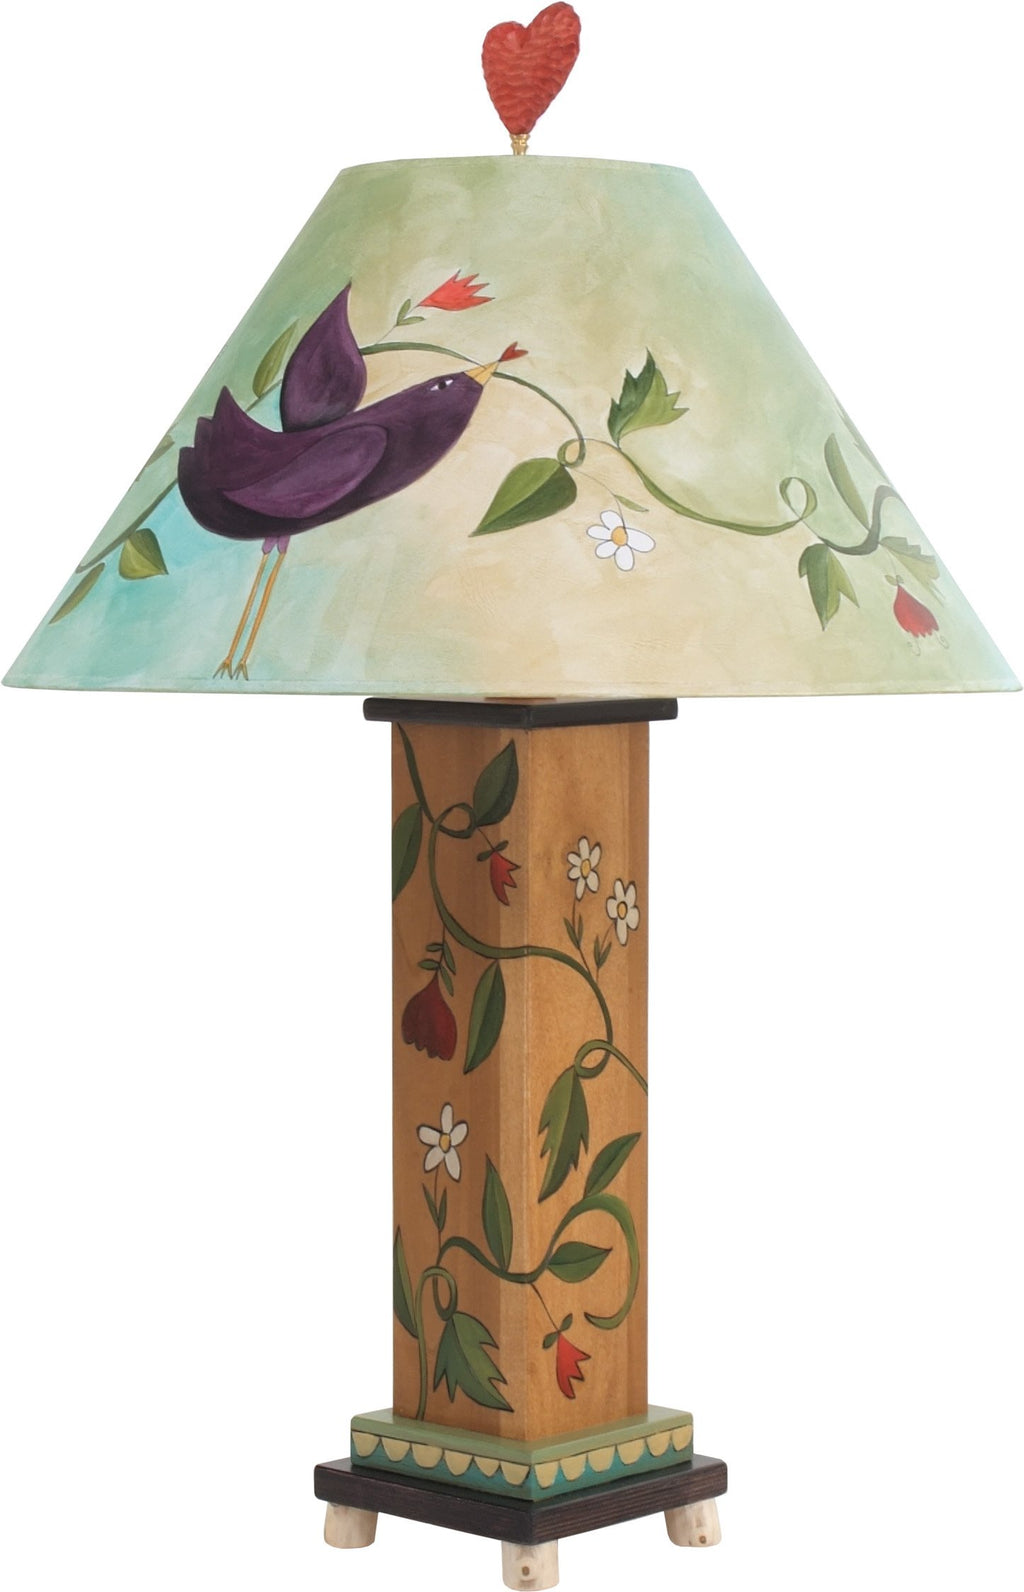 Box Table Lamp –  Eclectic folk art table lamp with vines, flowers, and birds